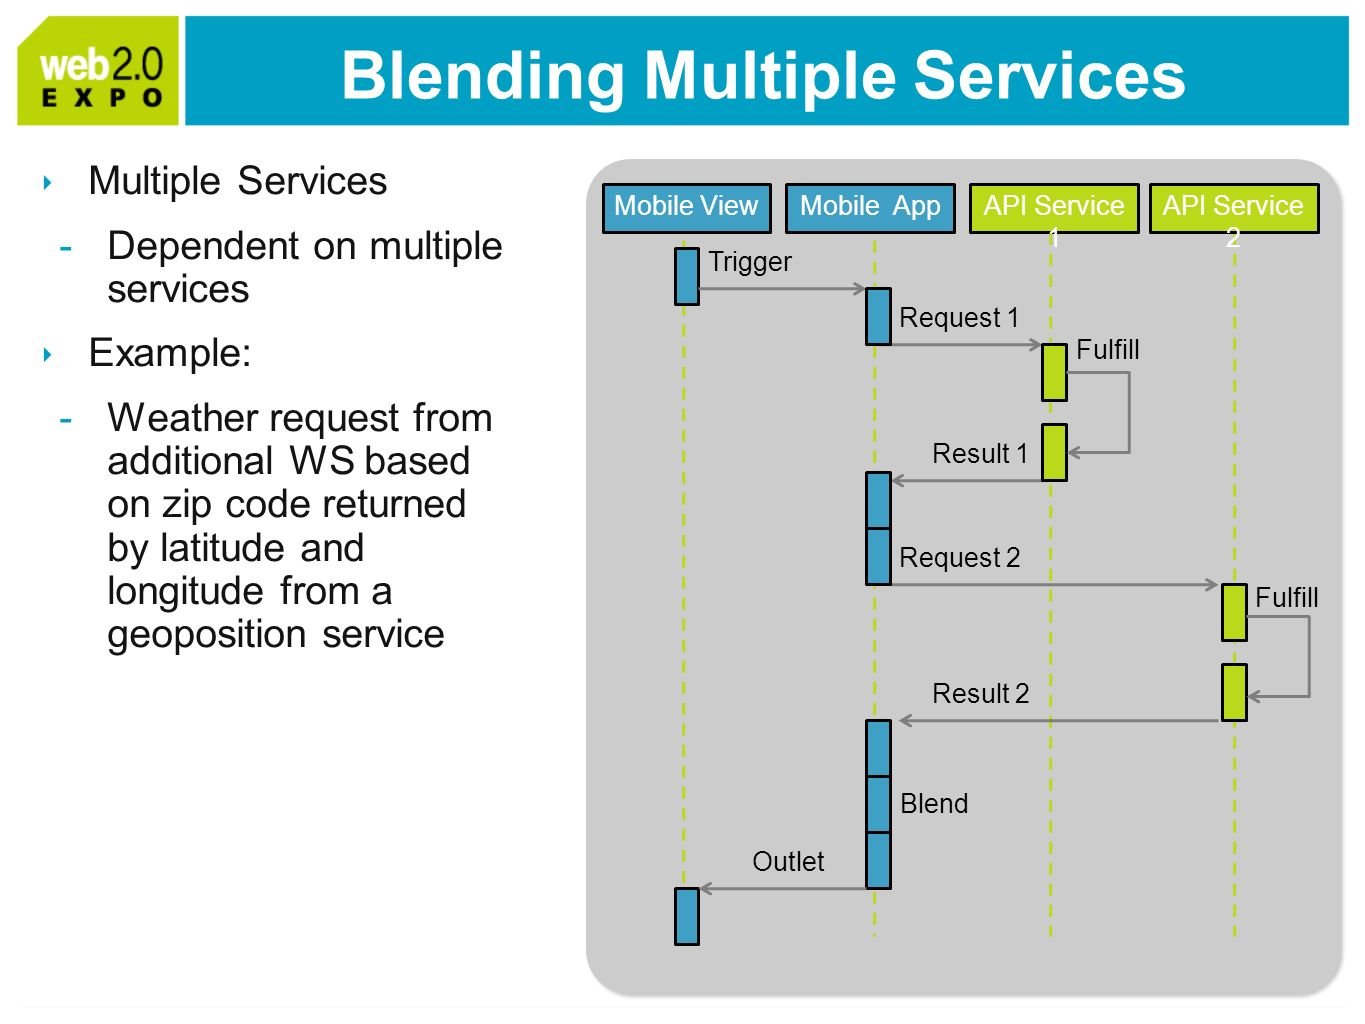 Blending Multiple Services Multiple Services -Dependent on multiple services Example: -Weather request from additional WS based on zip code returned by latitude and longitude from a geoposition service API Service 1 Mobile View Trigger Request 1 Mobile App Request 2 Result 1 Fulfill Result 2 Blend Outlet API Service 2 Fulfill